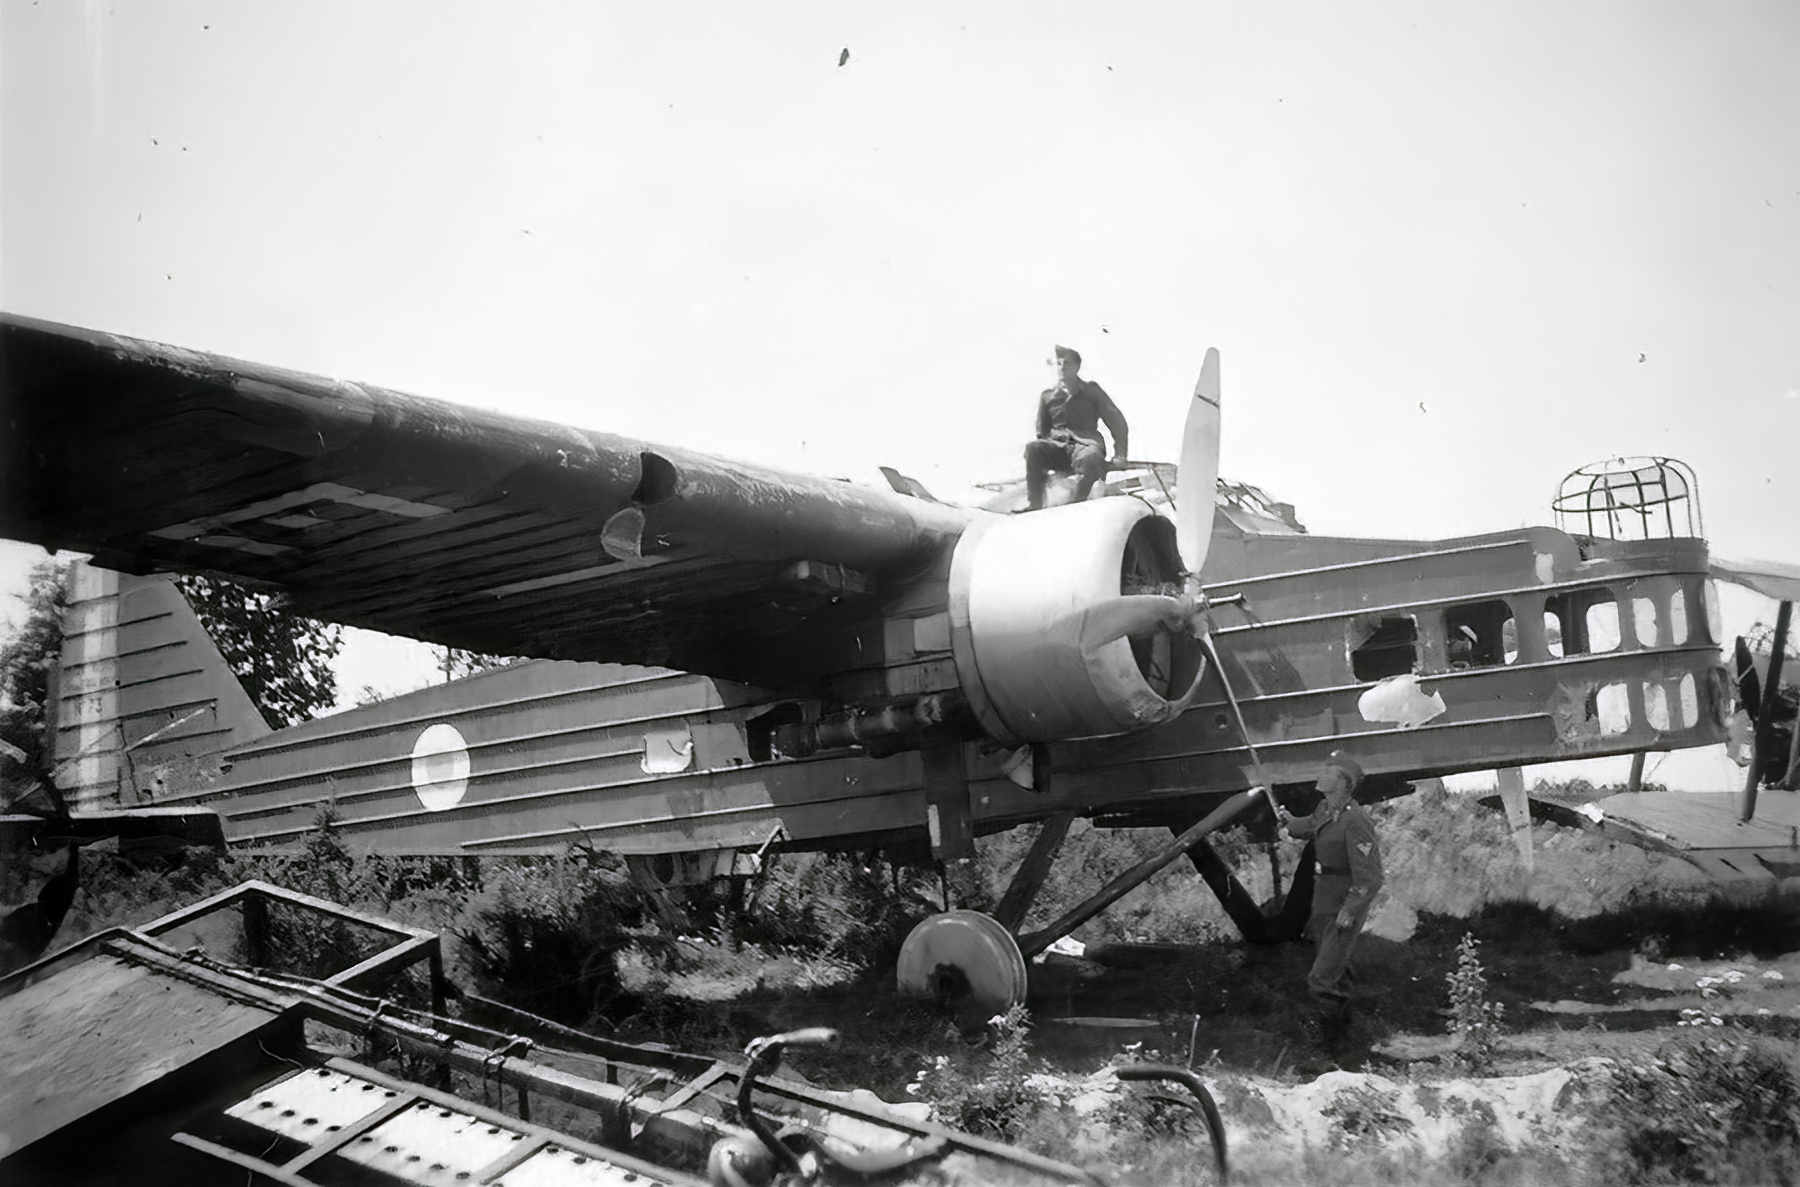 French Airforce Bloch MB 200 destroyed whilst on the ground battle of France May Jun 1940 ebay 01